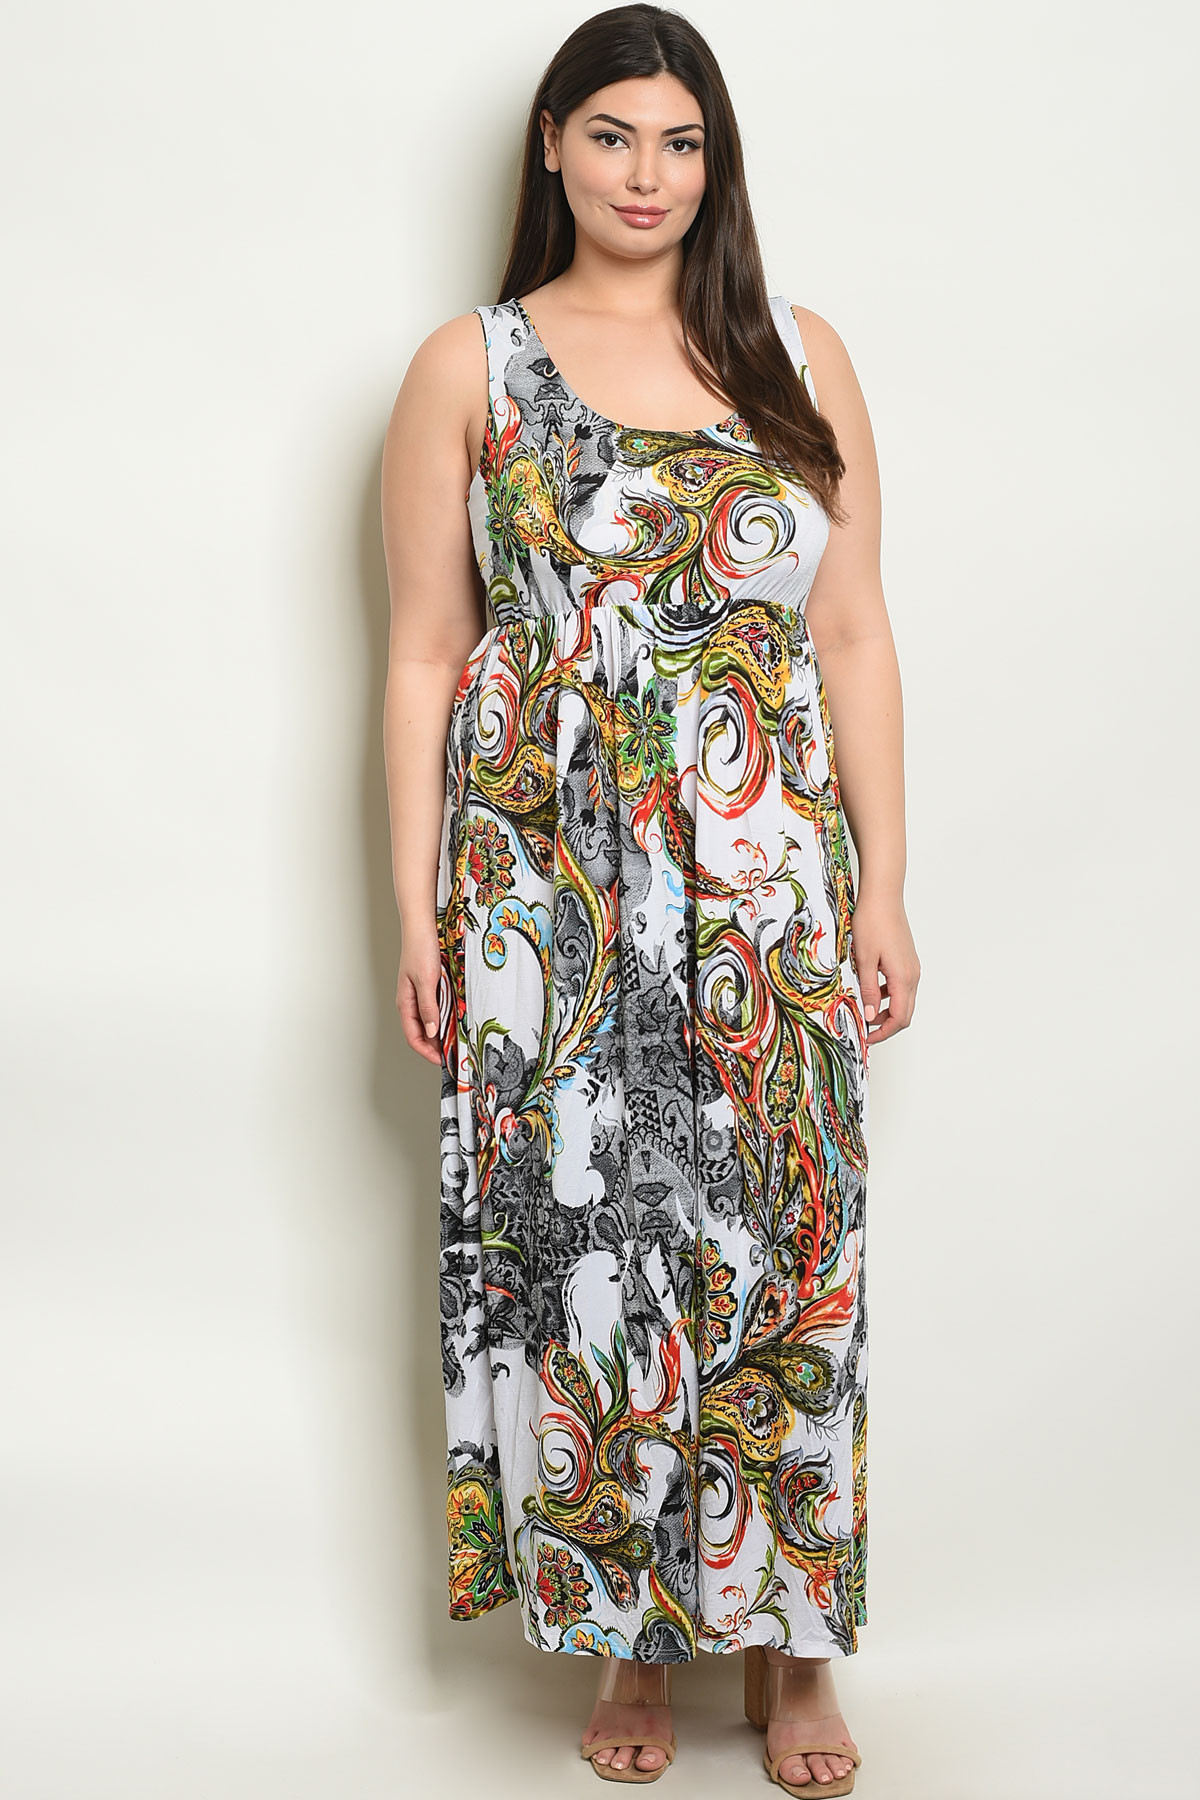 ec06e2c13b18 ... WHITE PRINT PLUS SIZE DRESS 2-2. Larger Photo ...